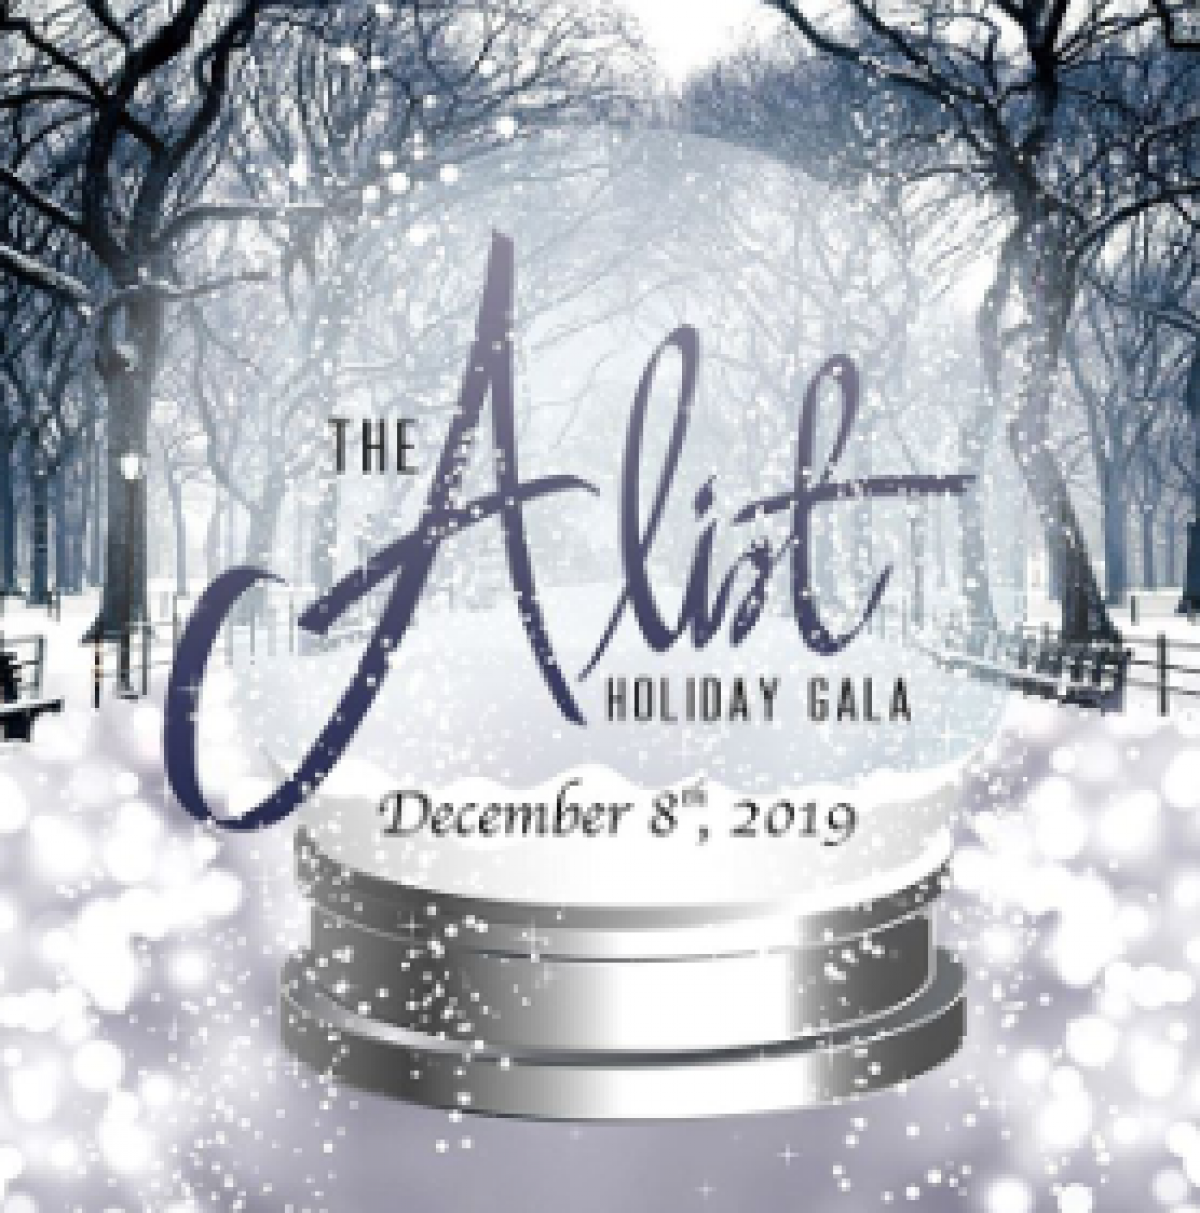 The A List flyer or graphic.